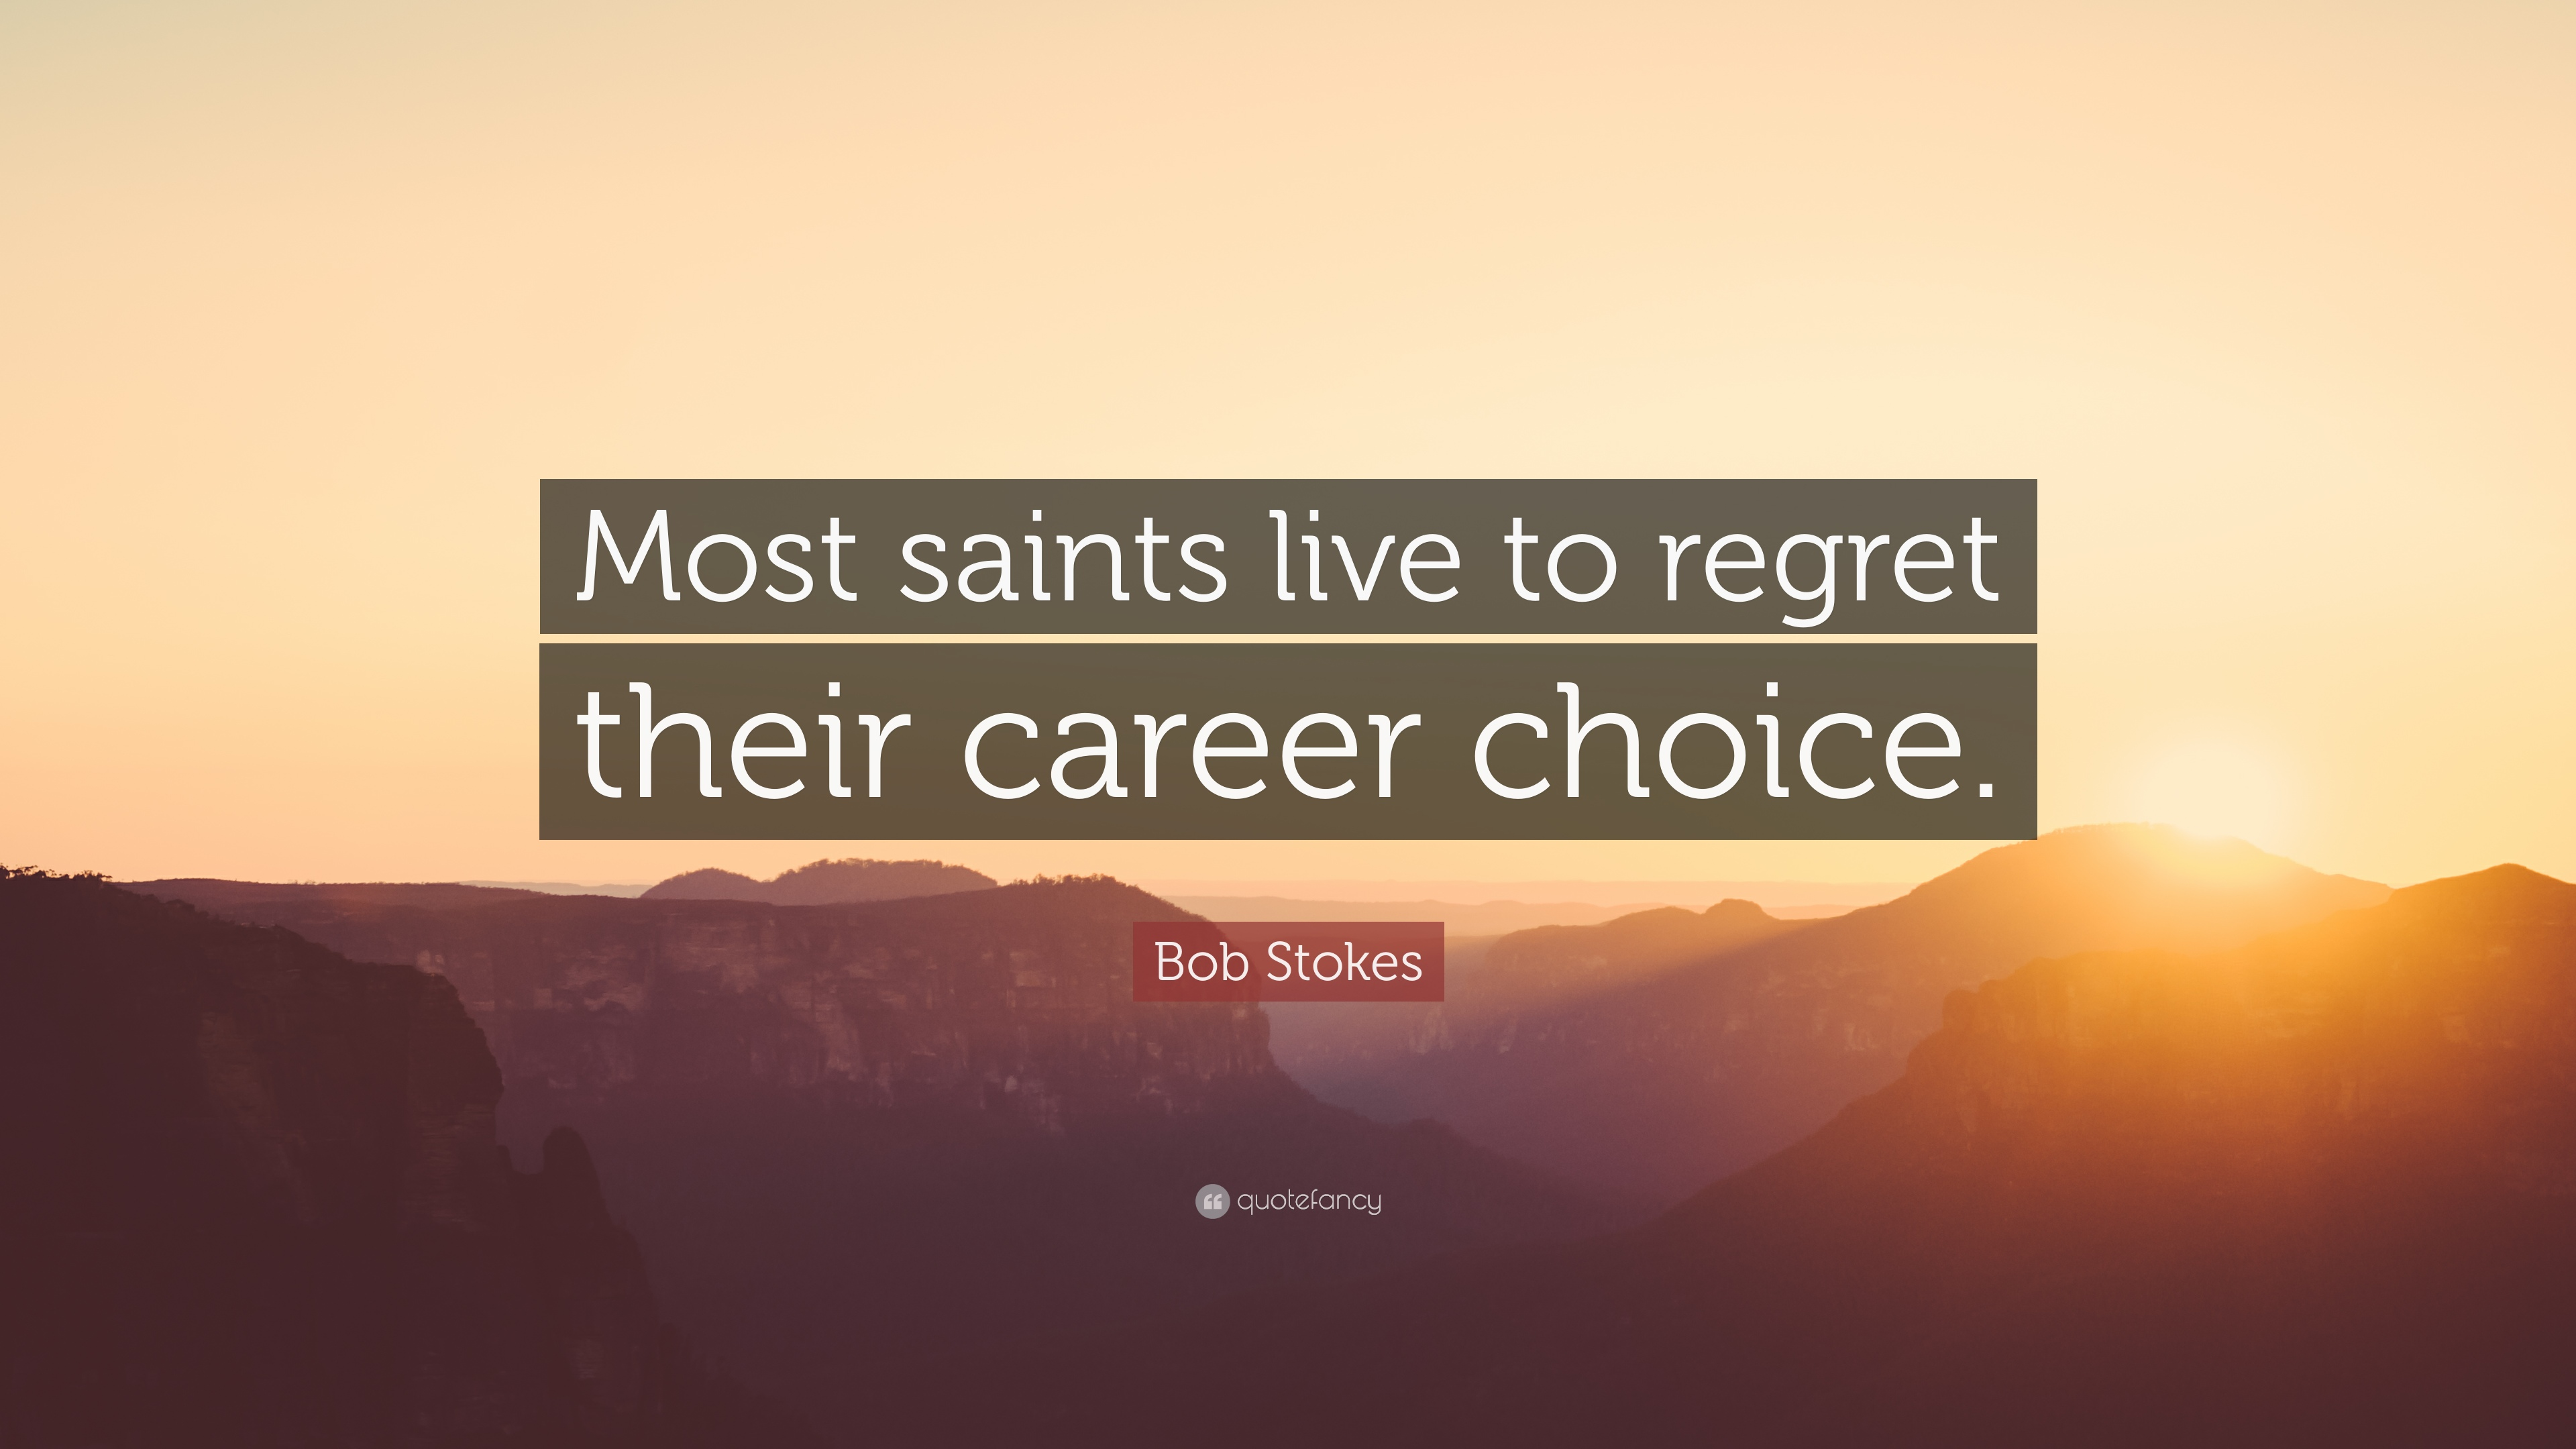 bob stokes quotes 2 quotefancy bob stokes quote most saints live to regret their career choice